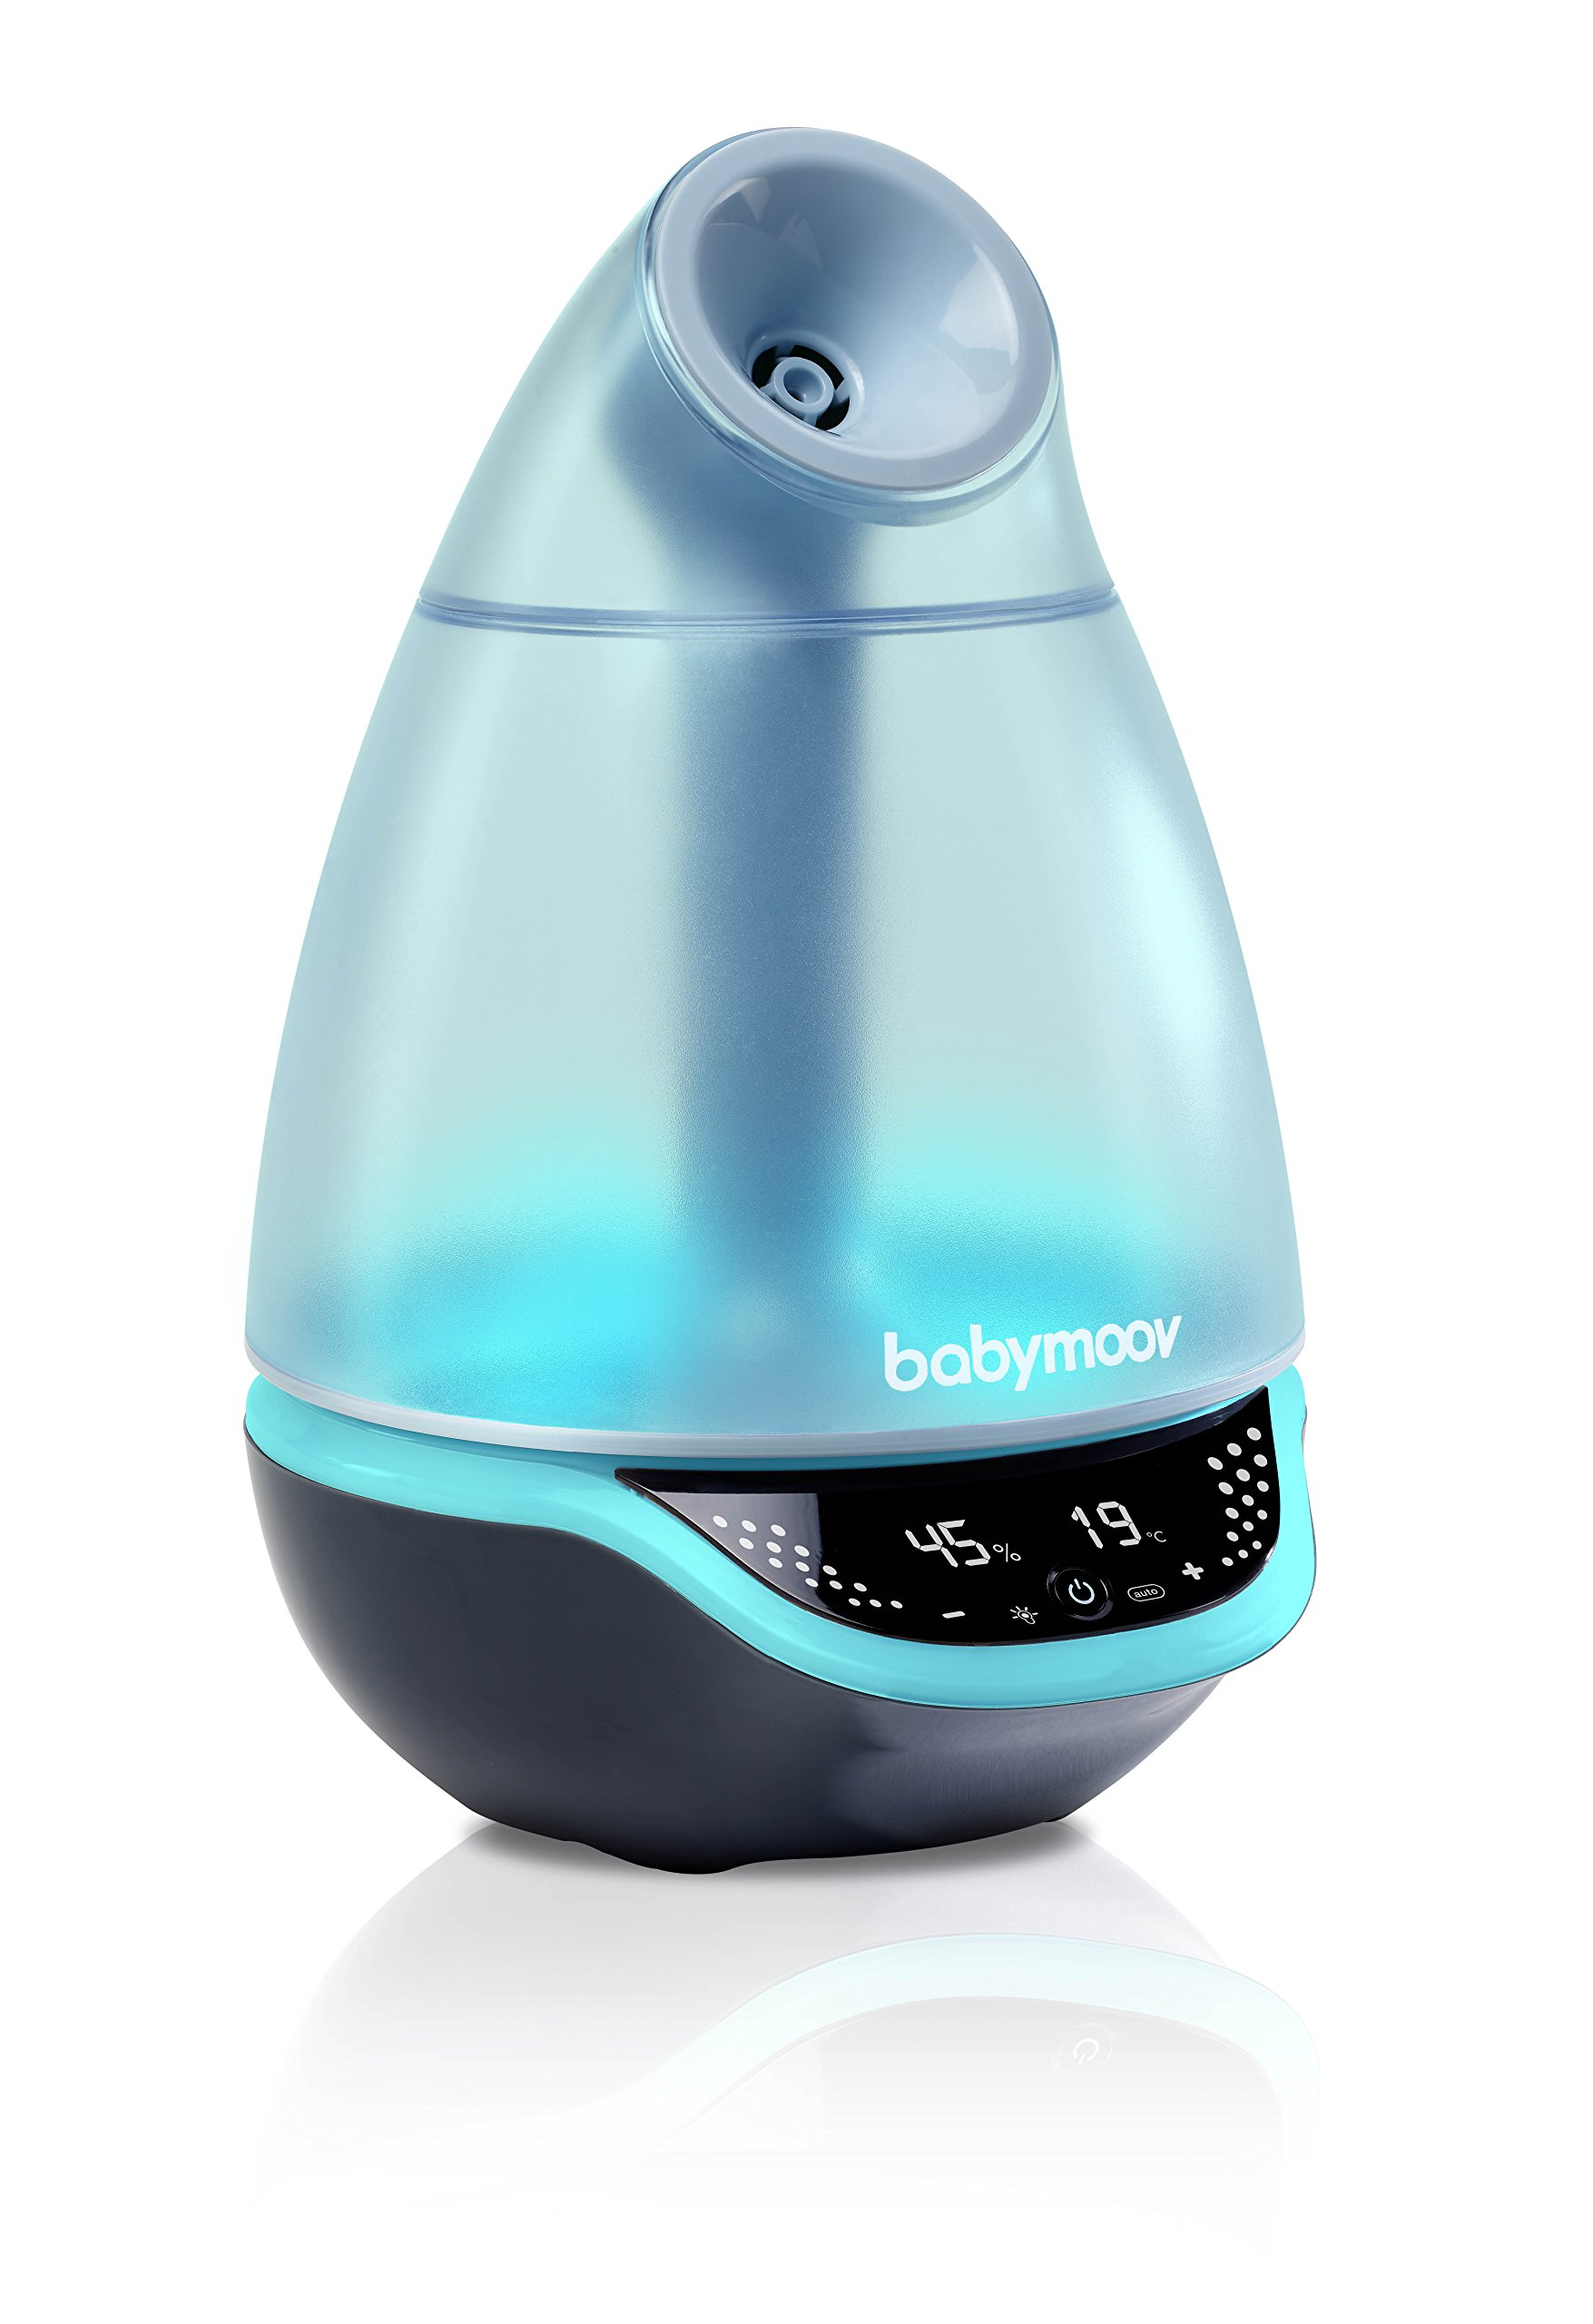 Babymoov Hygro Plus | 3-in-1 Humidifier, Multicolored Night Light & Essential Oil Diffuser | Automatic Operation for Easy Use and Care (NO Filter Needed)